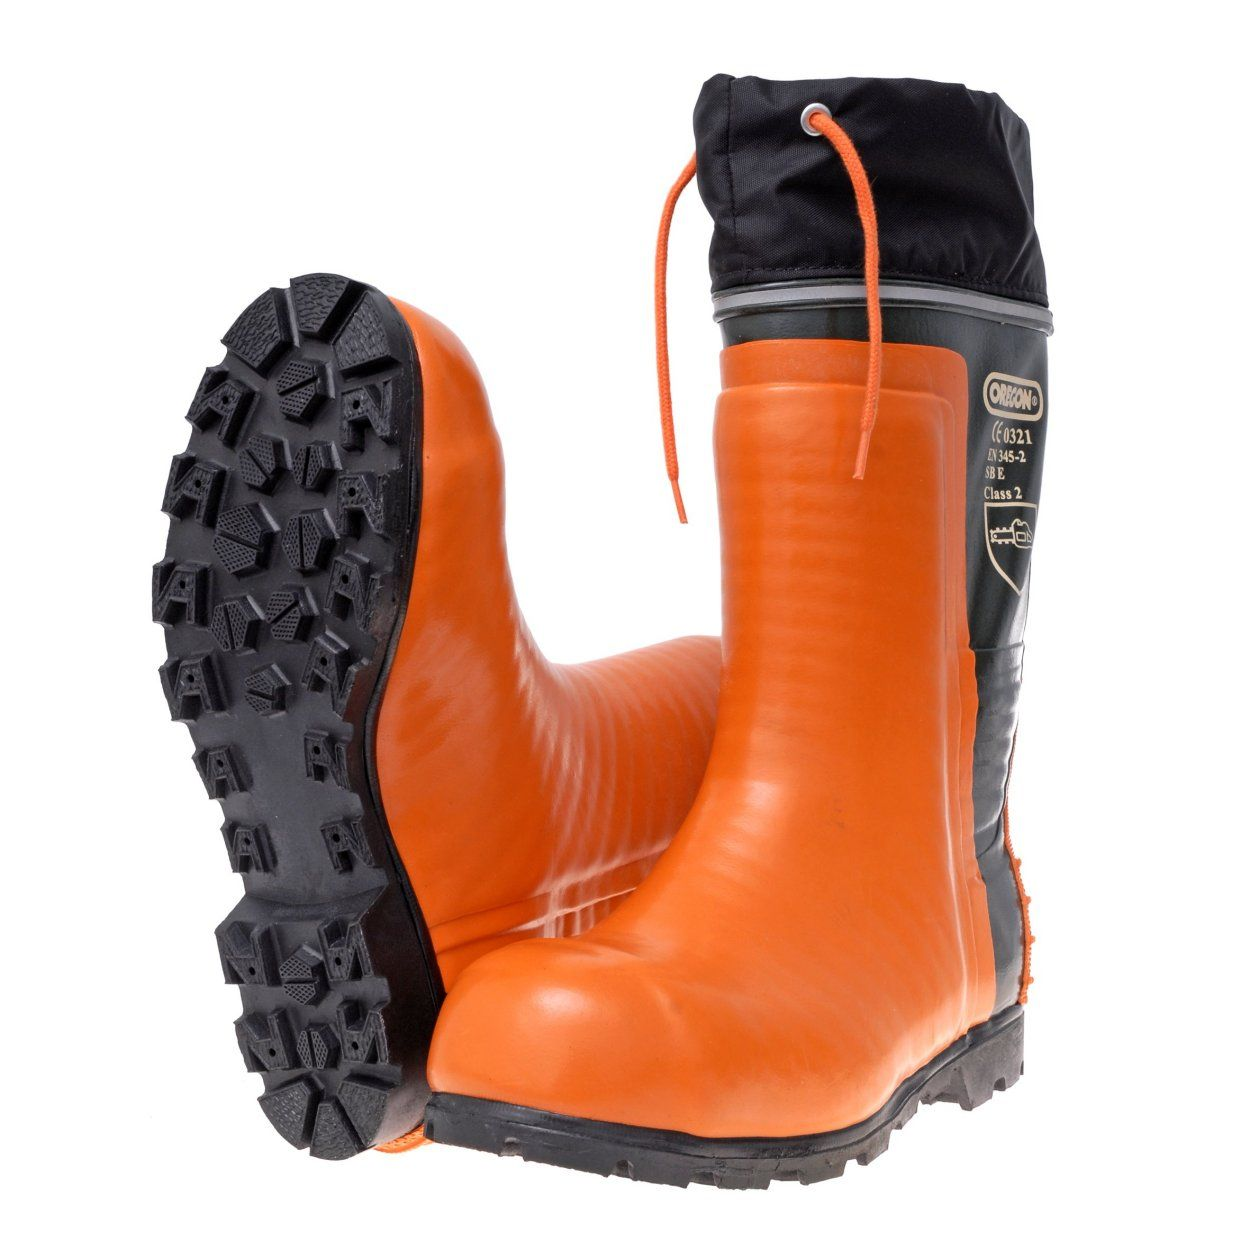 Class 2 YUKON Rubber Chainsaw Boots SIZE 10 1/2 295384/45